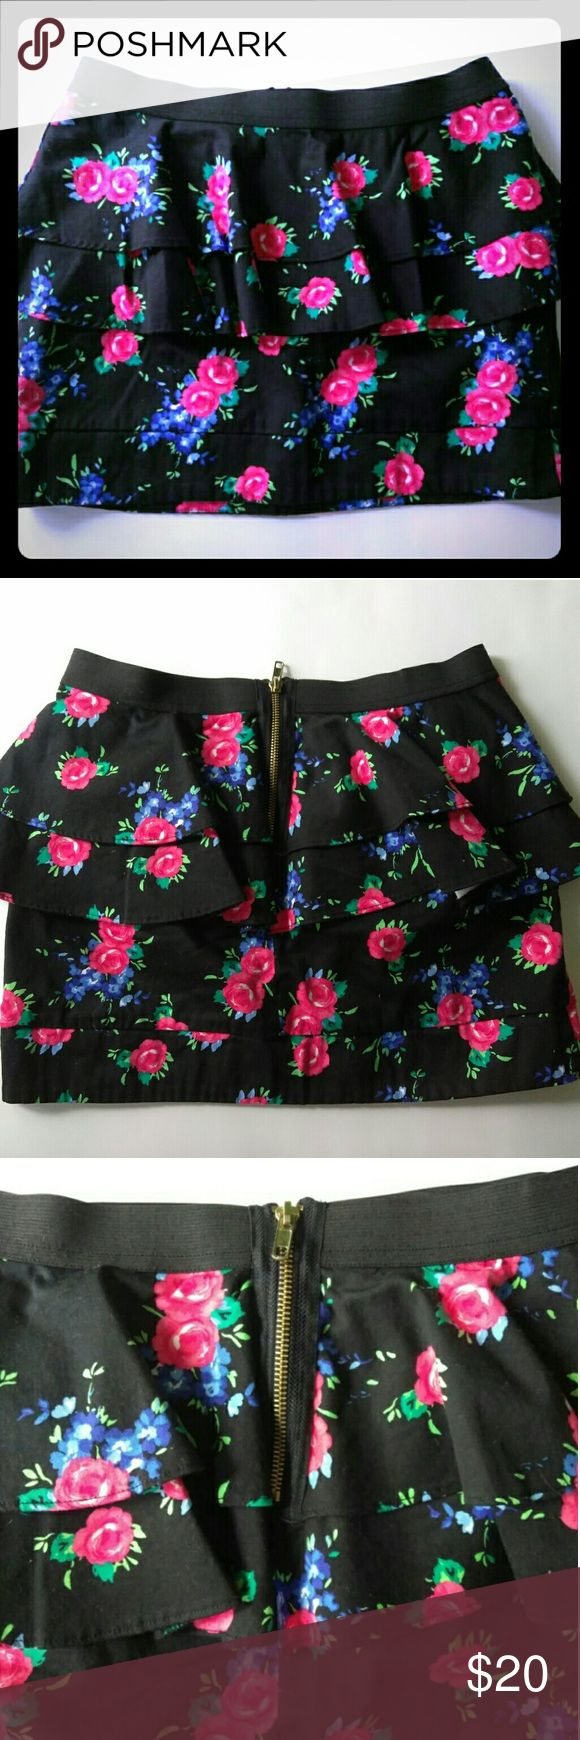 Floral peplum mini skirt, black/floral stretch A pretty floral peplum mini skirt with red/blue/green flowers on black.  Width: 17 inches Length: 13 inches Waist (layed flat): 14 inches 97% cotton, 3% spandex Made in China  Machine wash cold. Gentle cycle with like colors only non-chlorine bleach when needed. Tumble dry low. Low iron if needed. Do not dry clean.  Enjoy! Material Girl Skirts Mini